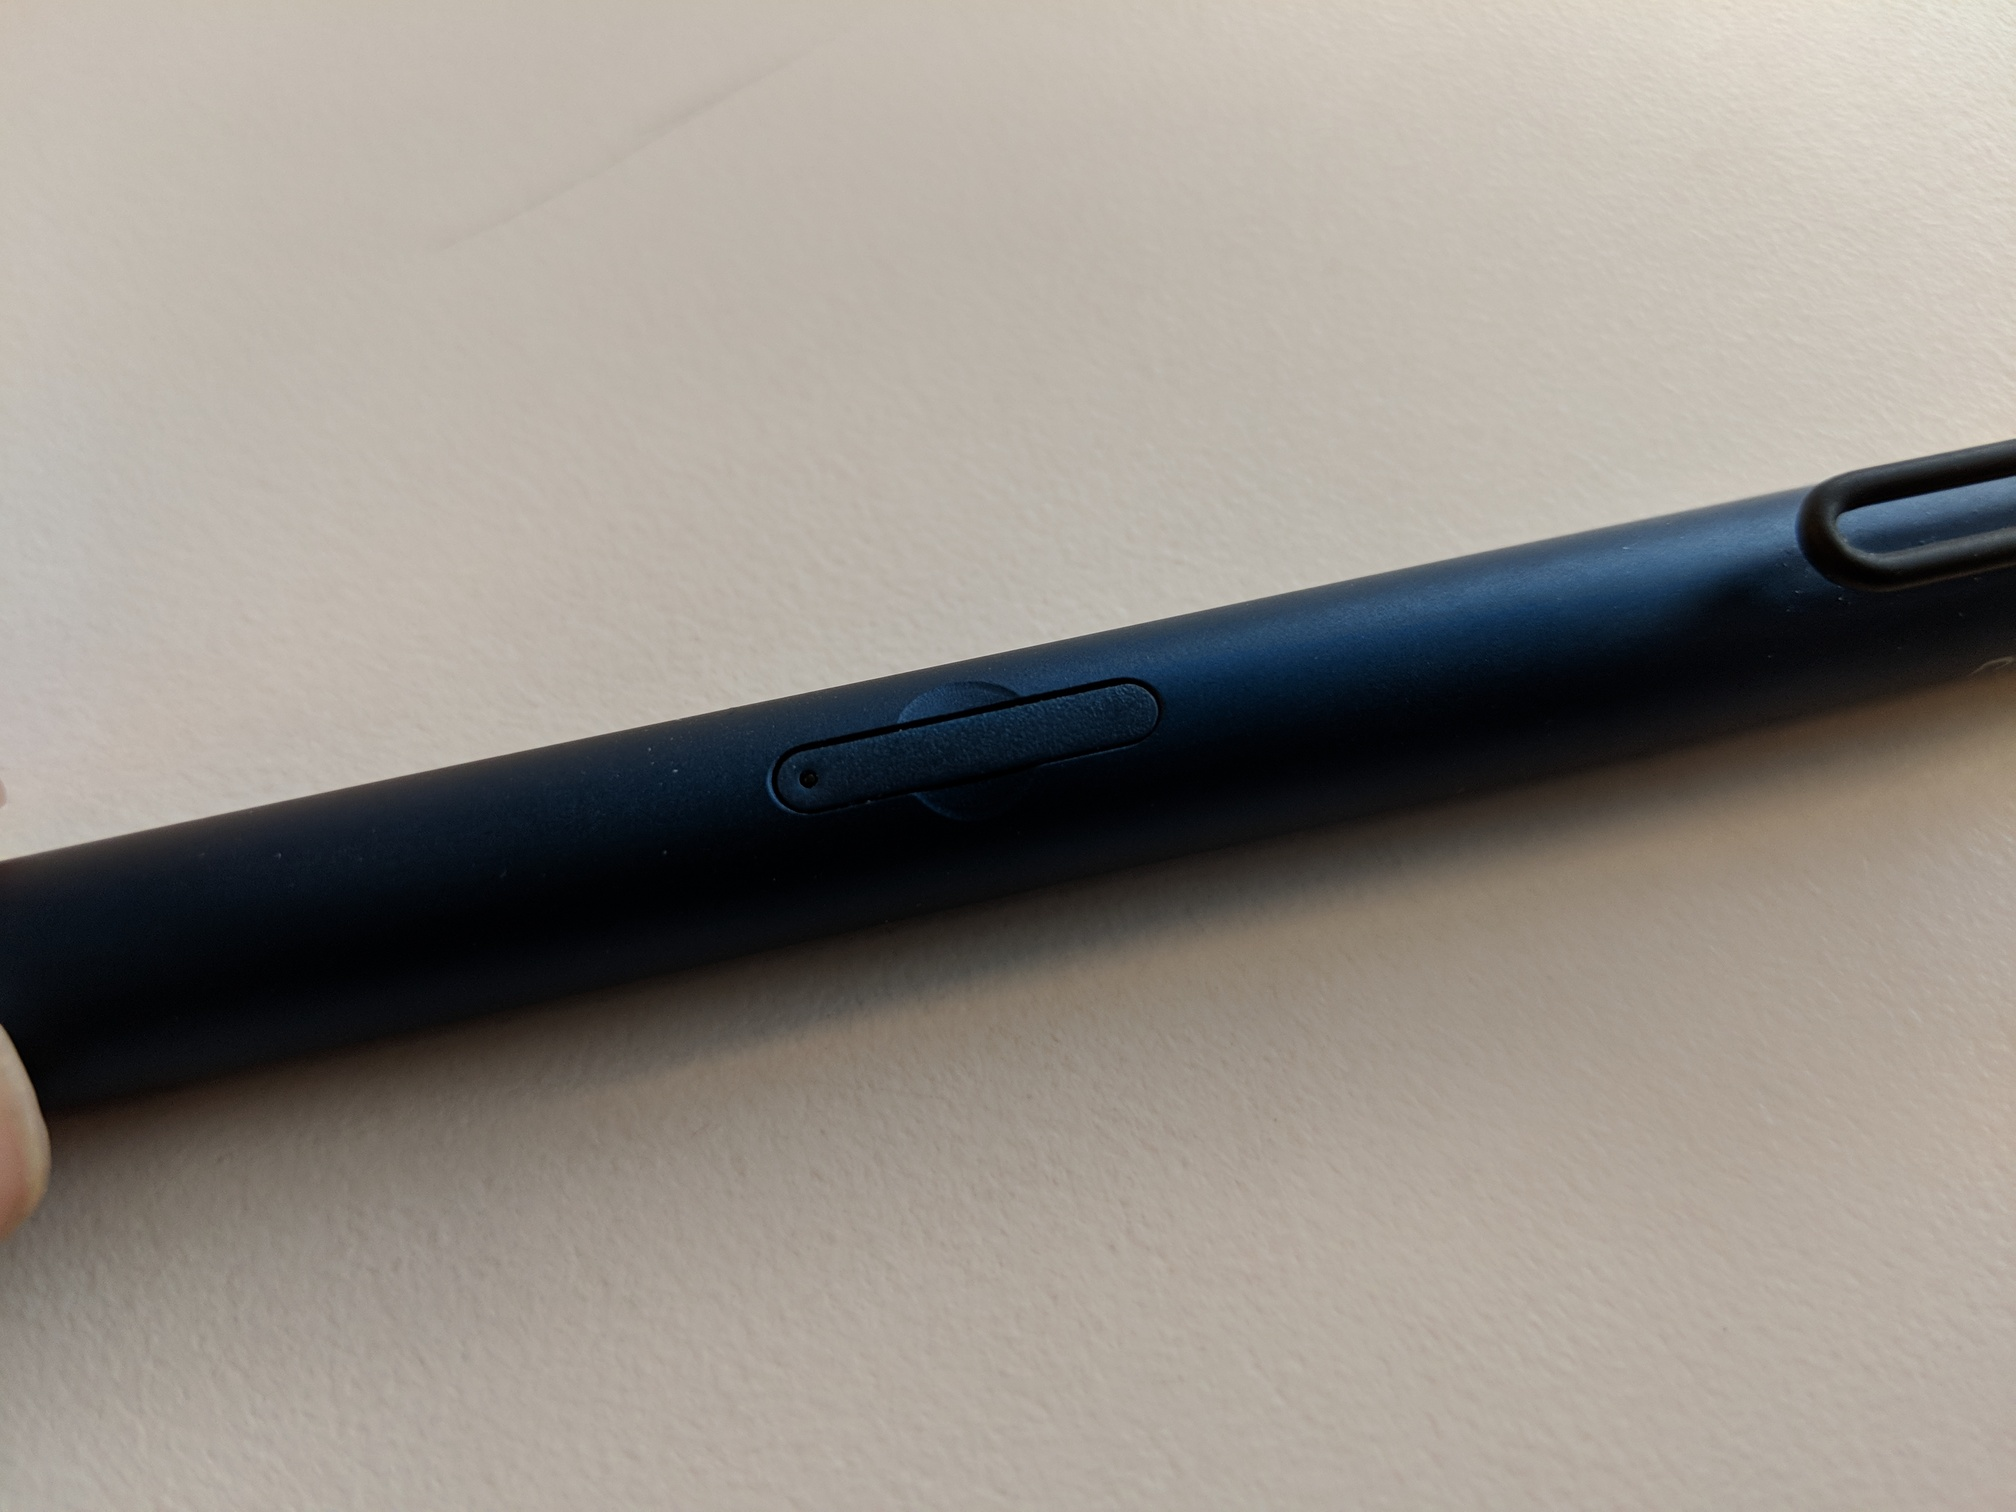 Wacom Bamboo Tip Review – TheCanadianTechie